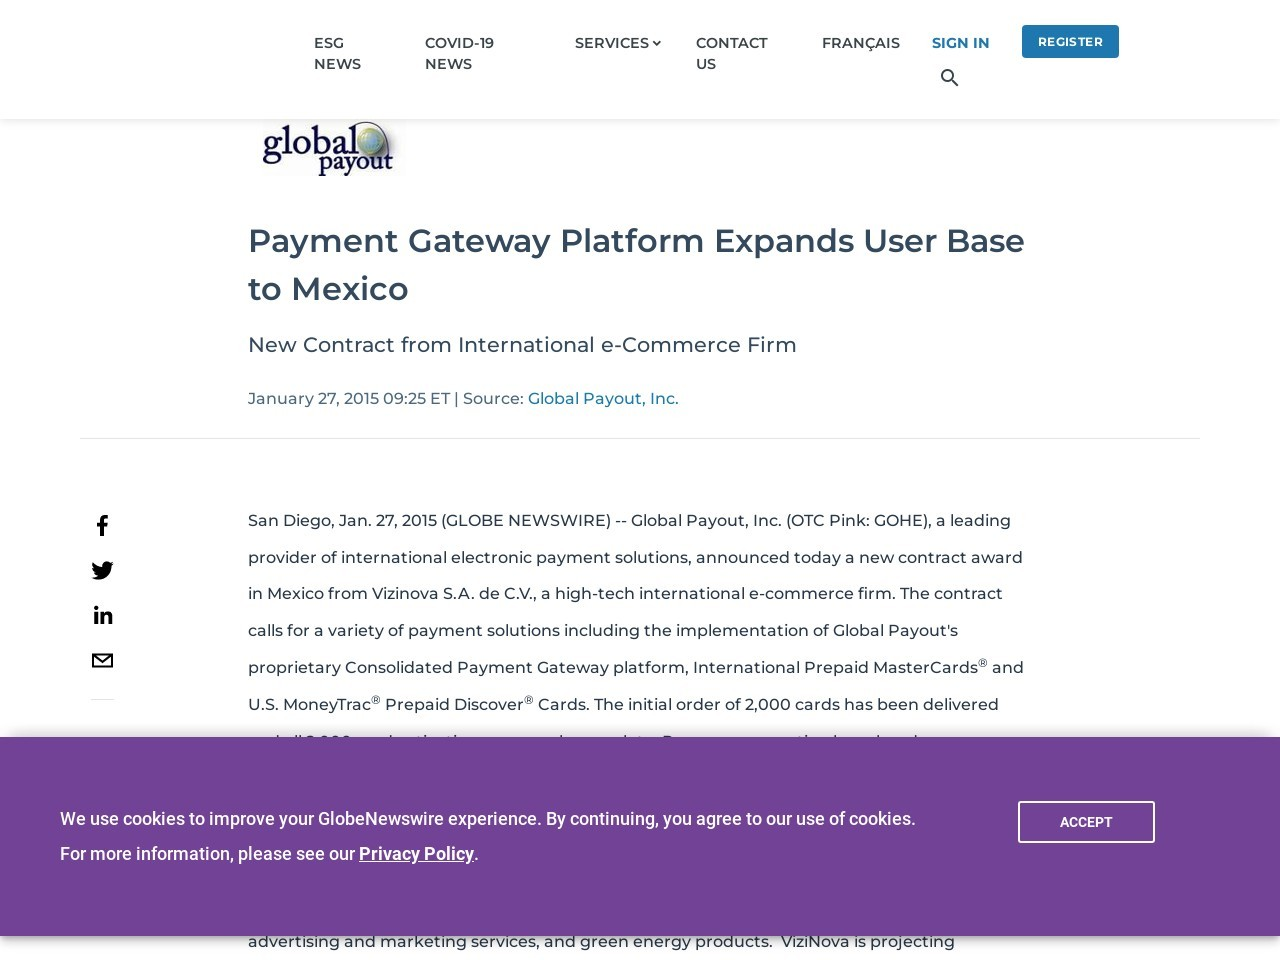 Payment Gateway Platform Expands User Base to Mexico